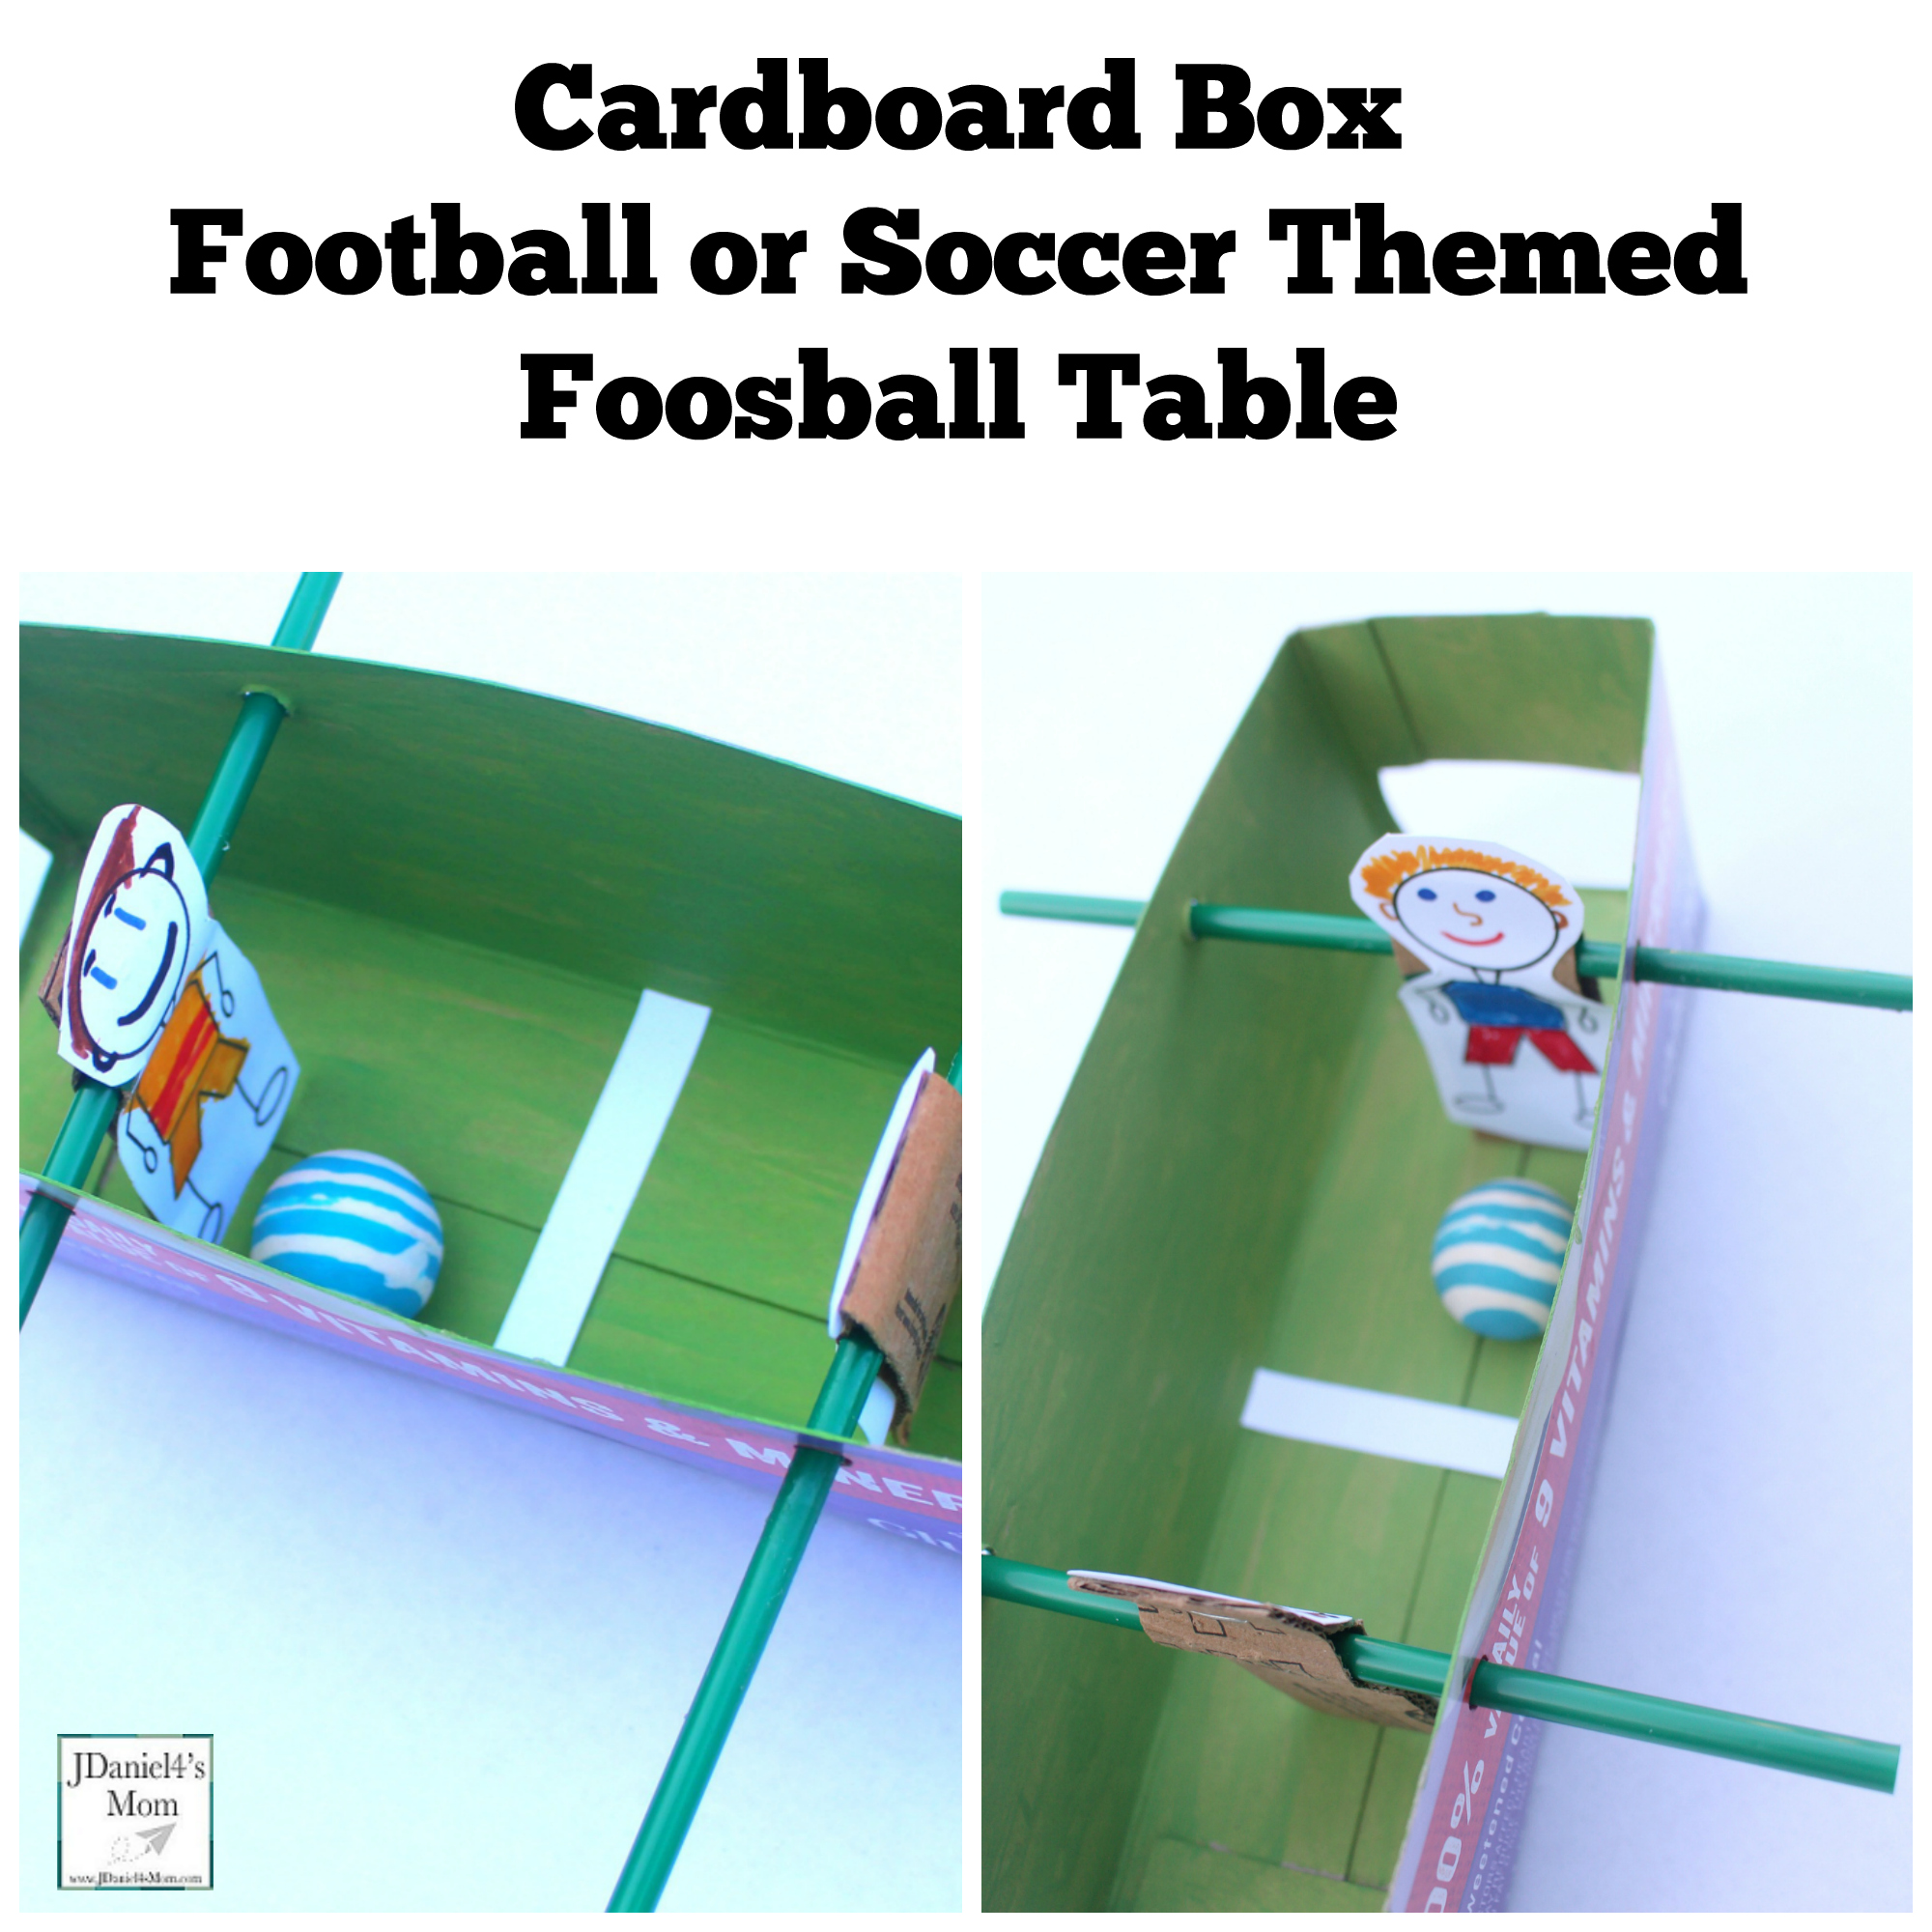 Your Kids Will Have Fun Creating Their Own Football Or